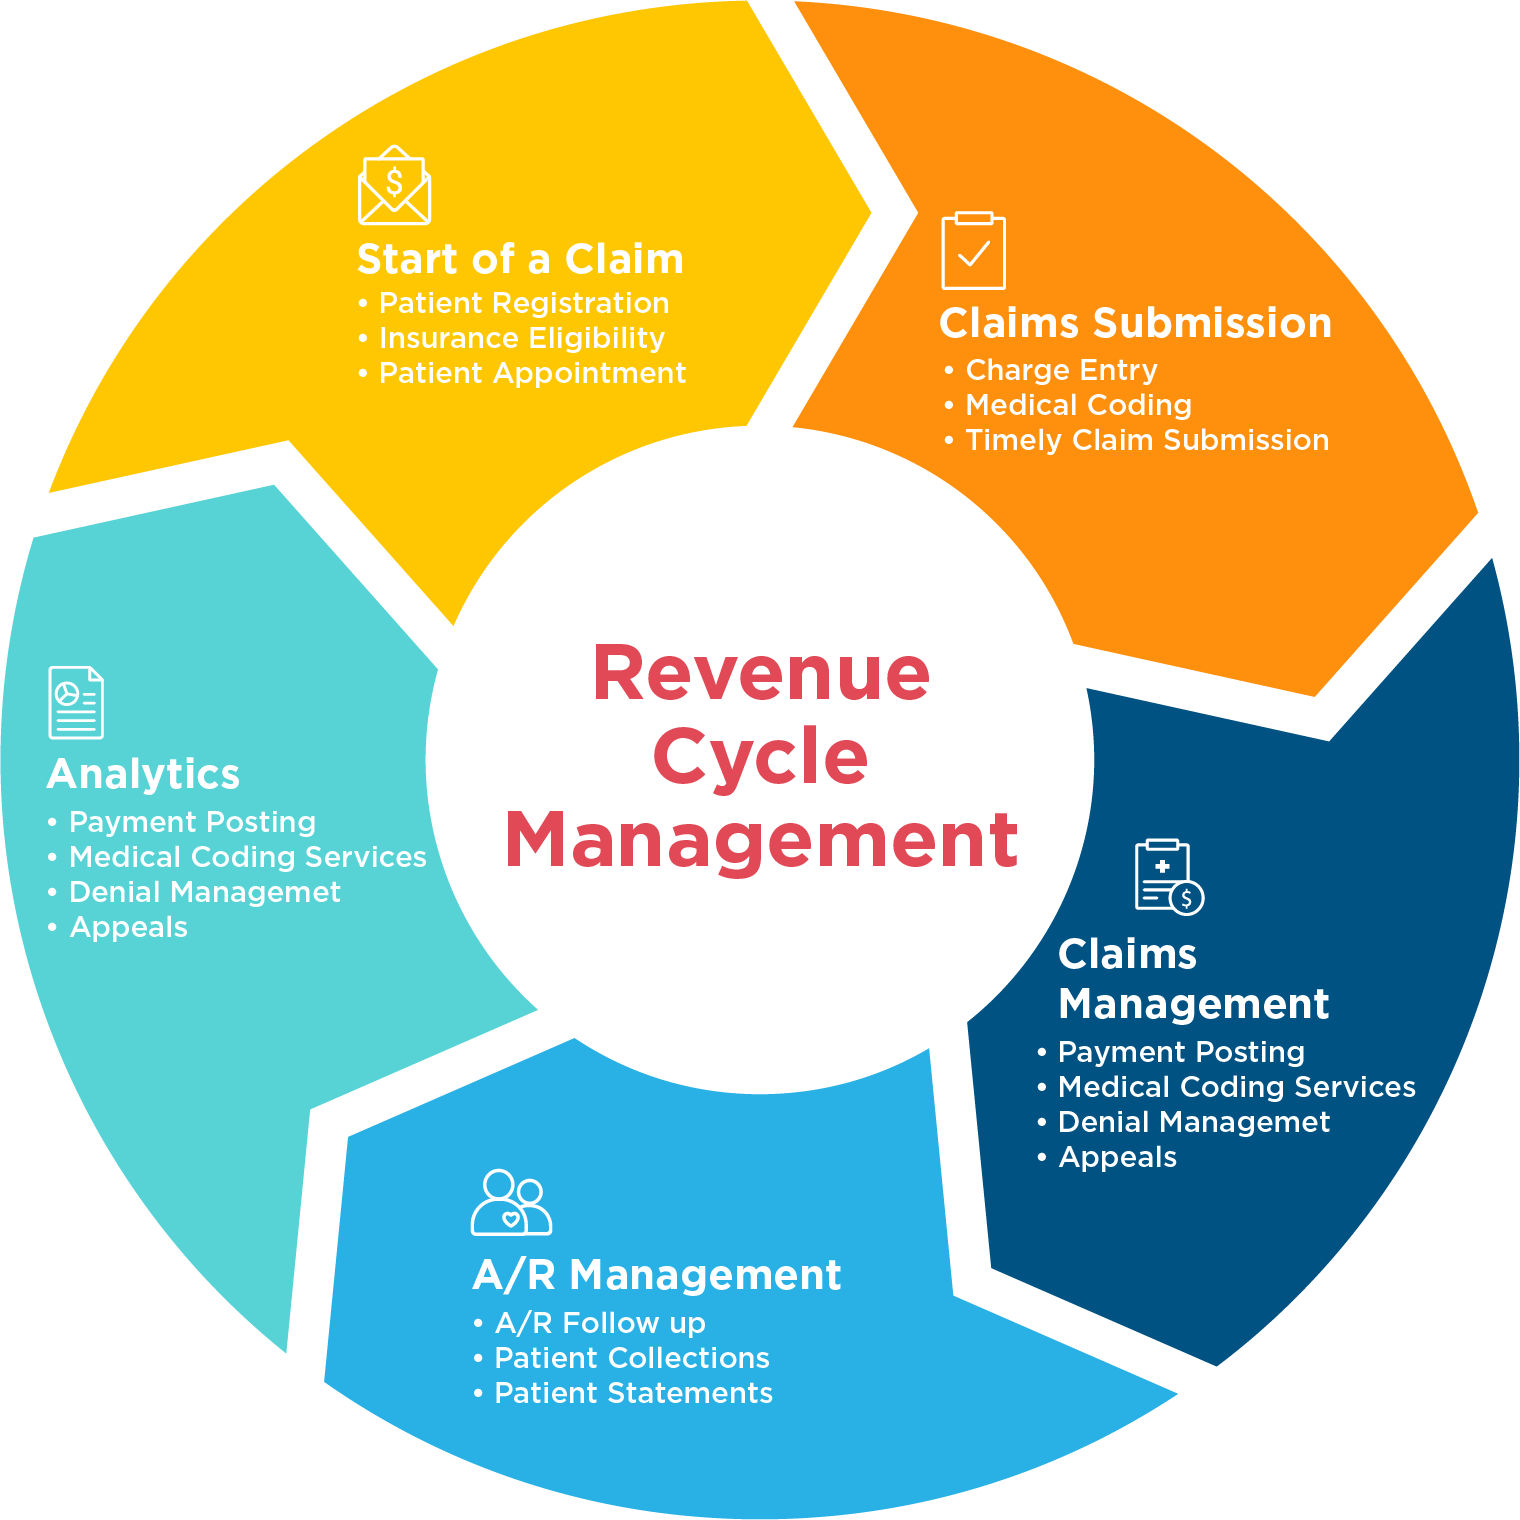 Revenue Cycle Management Applications